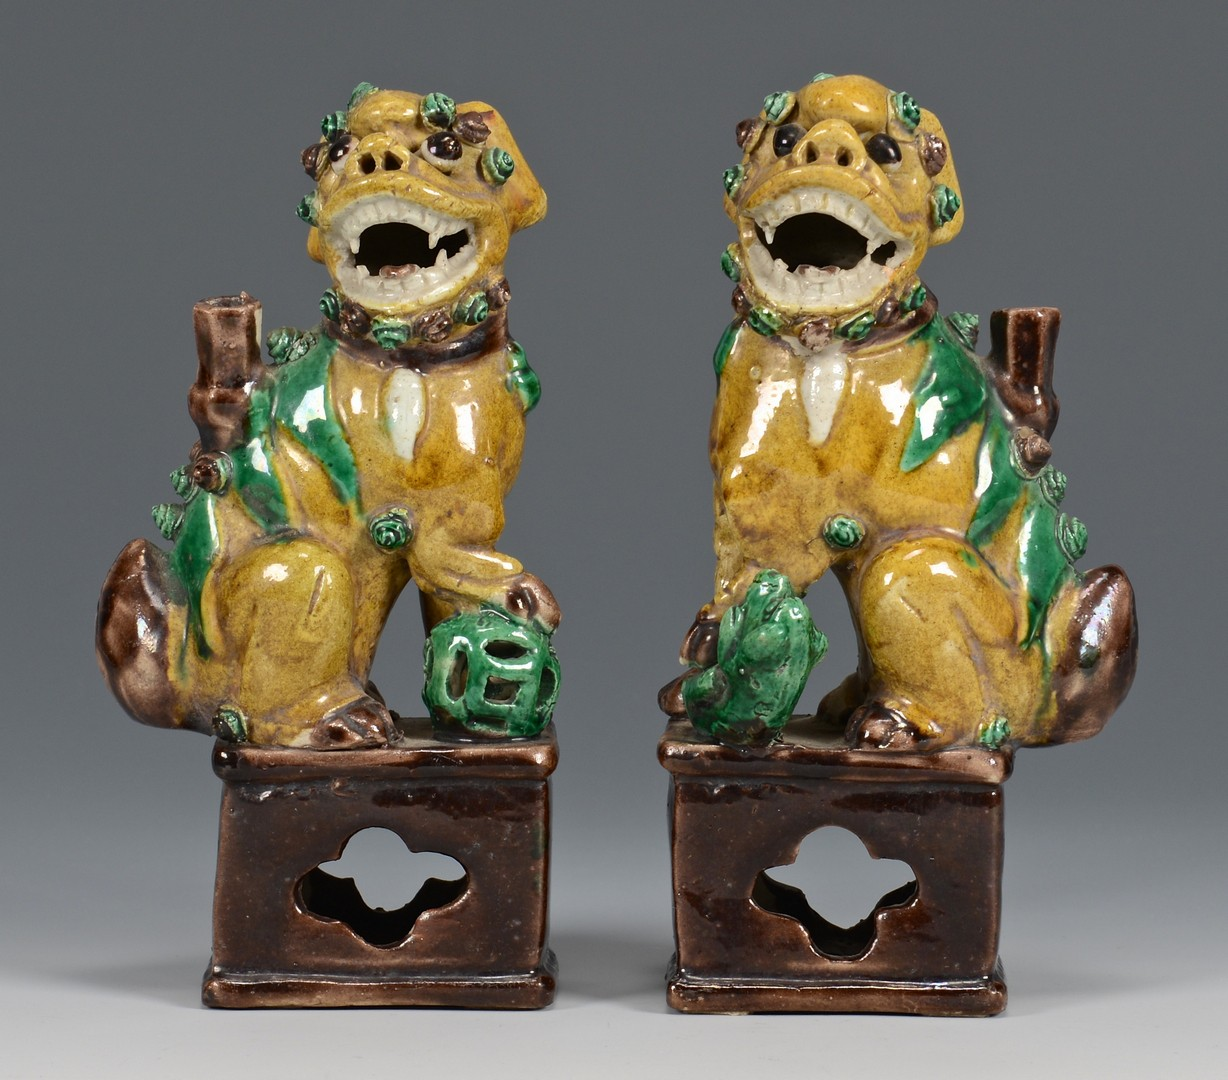 Lot 3832385: Chinese Jar and Foo Dogs